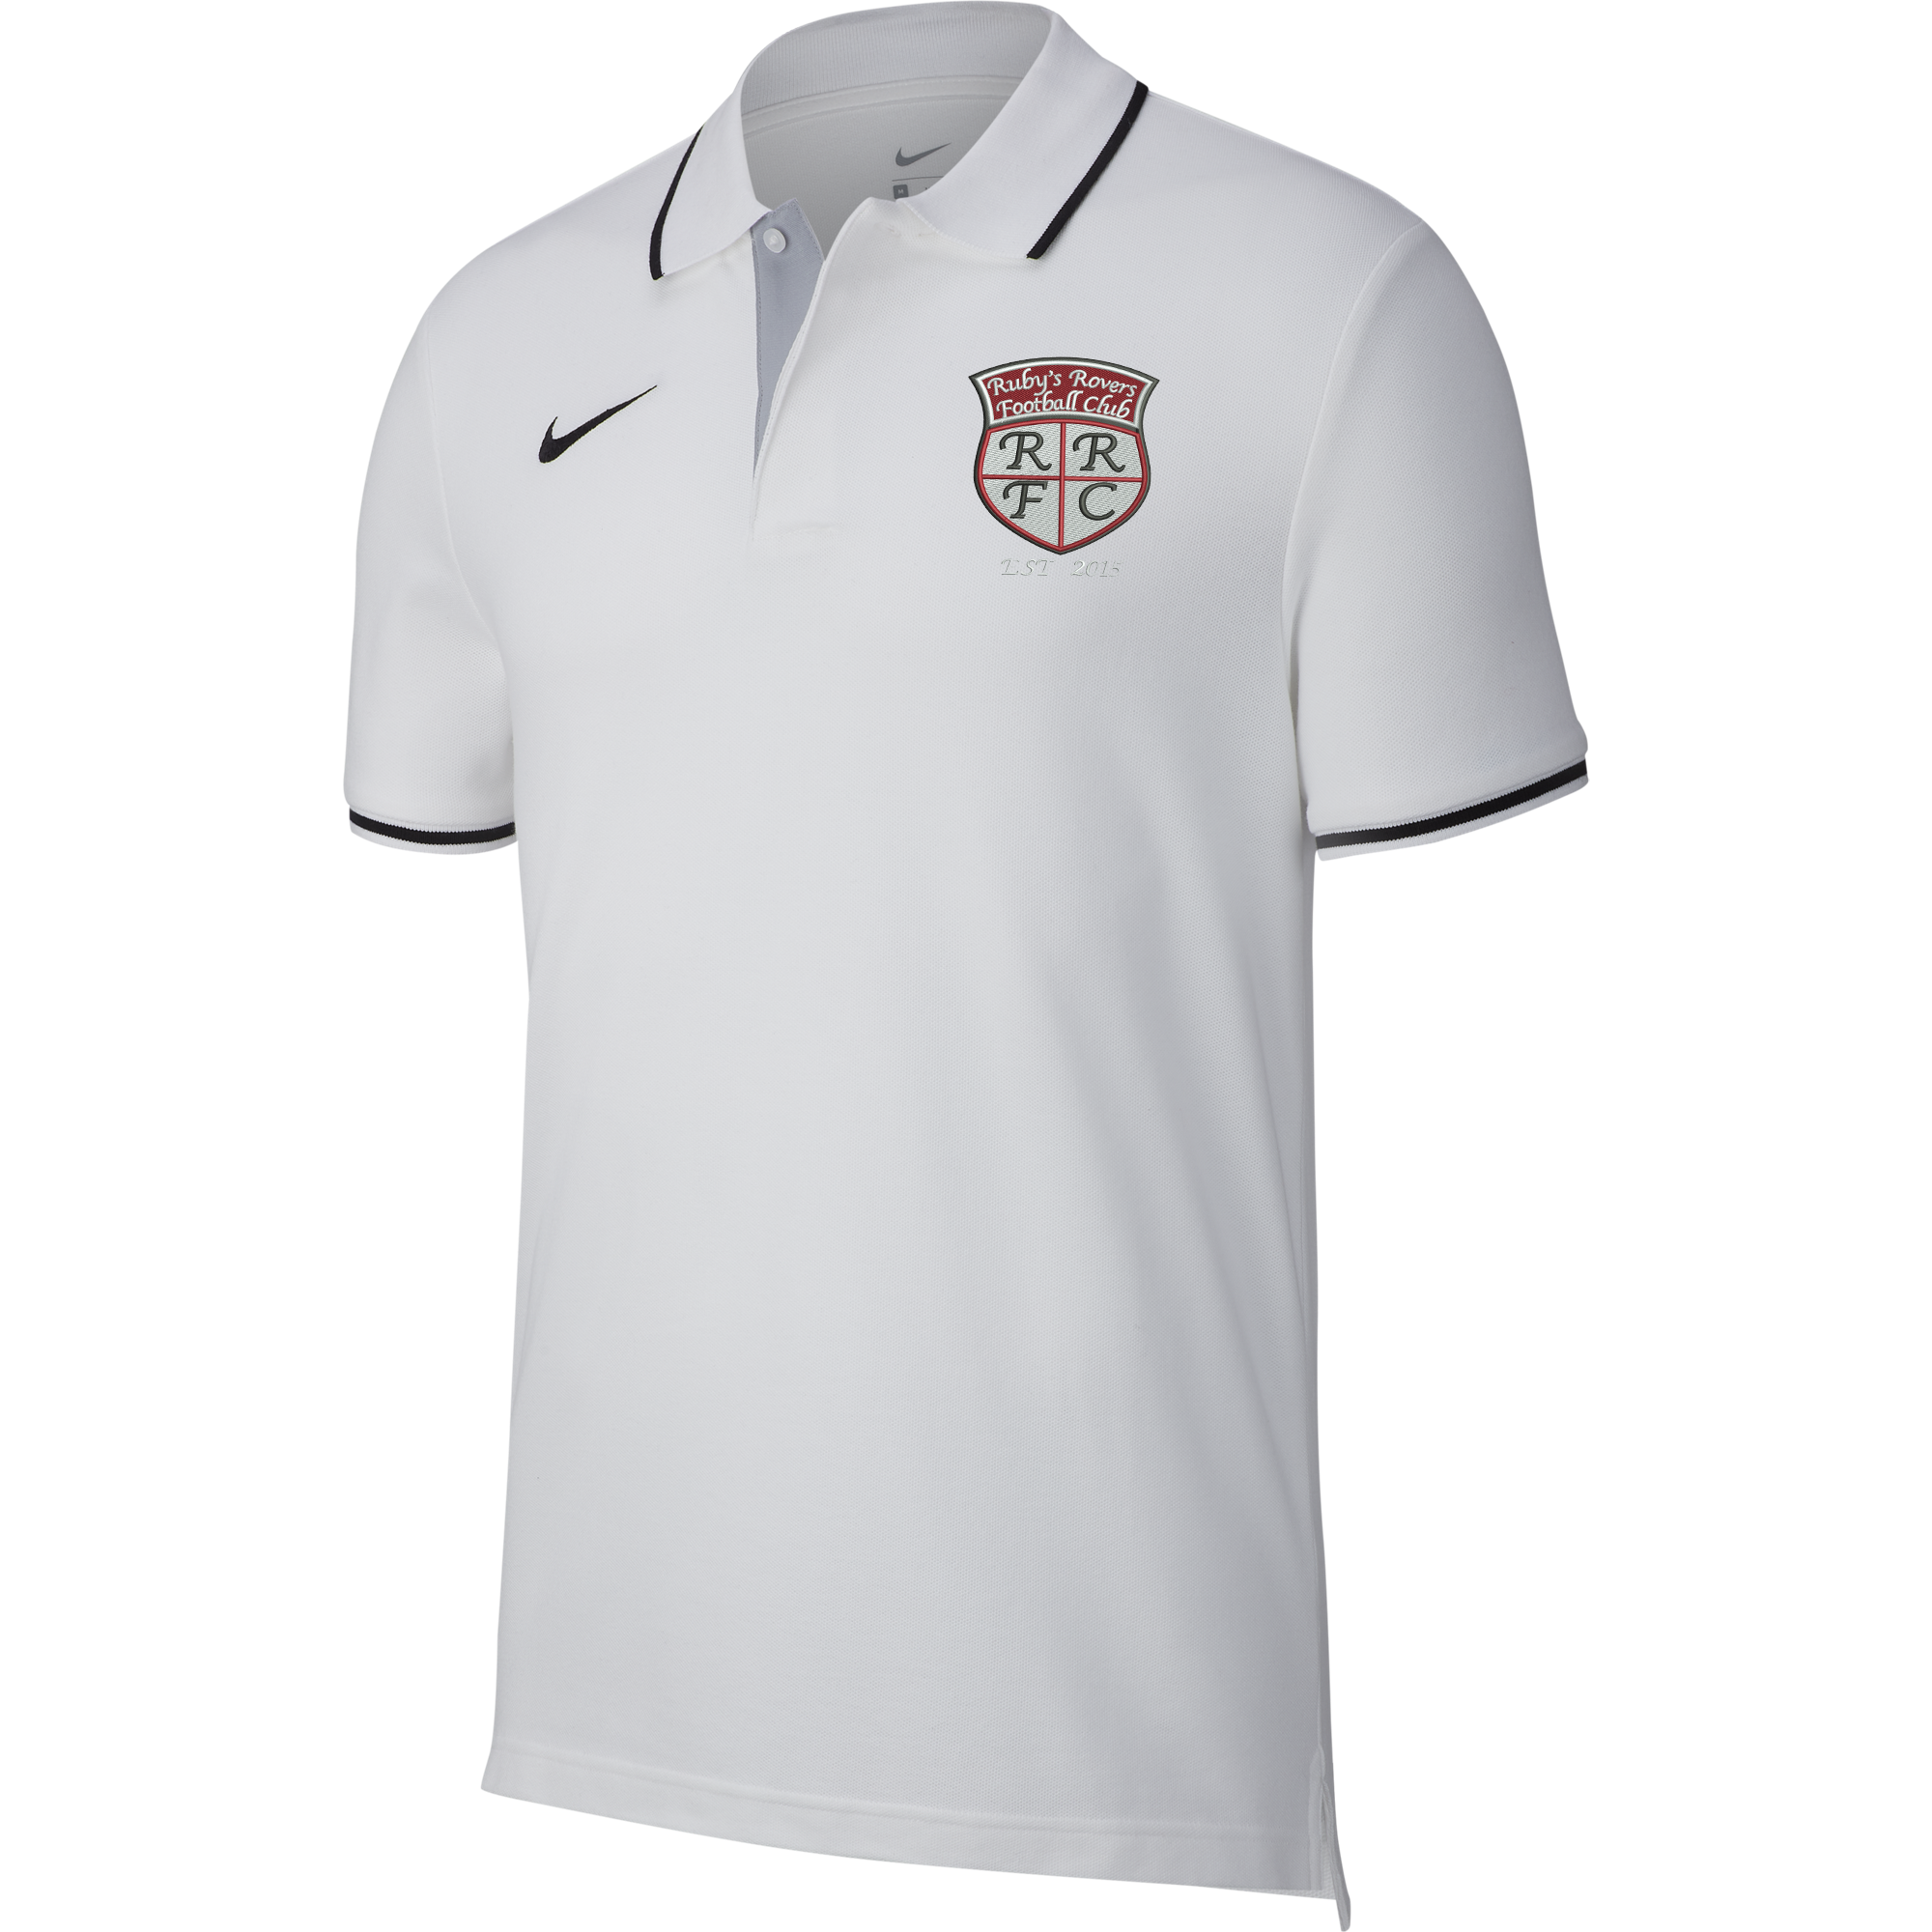 rubys rovers club polo 37154 p